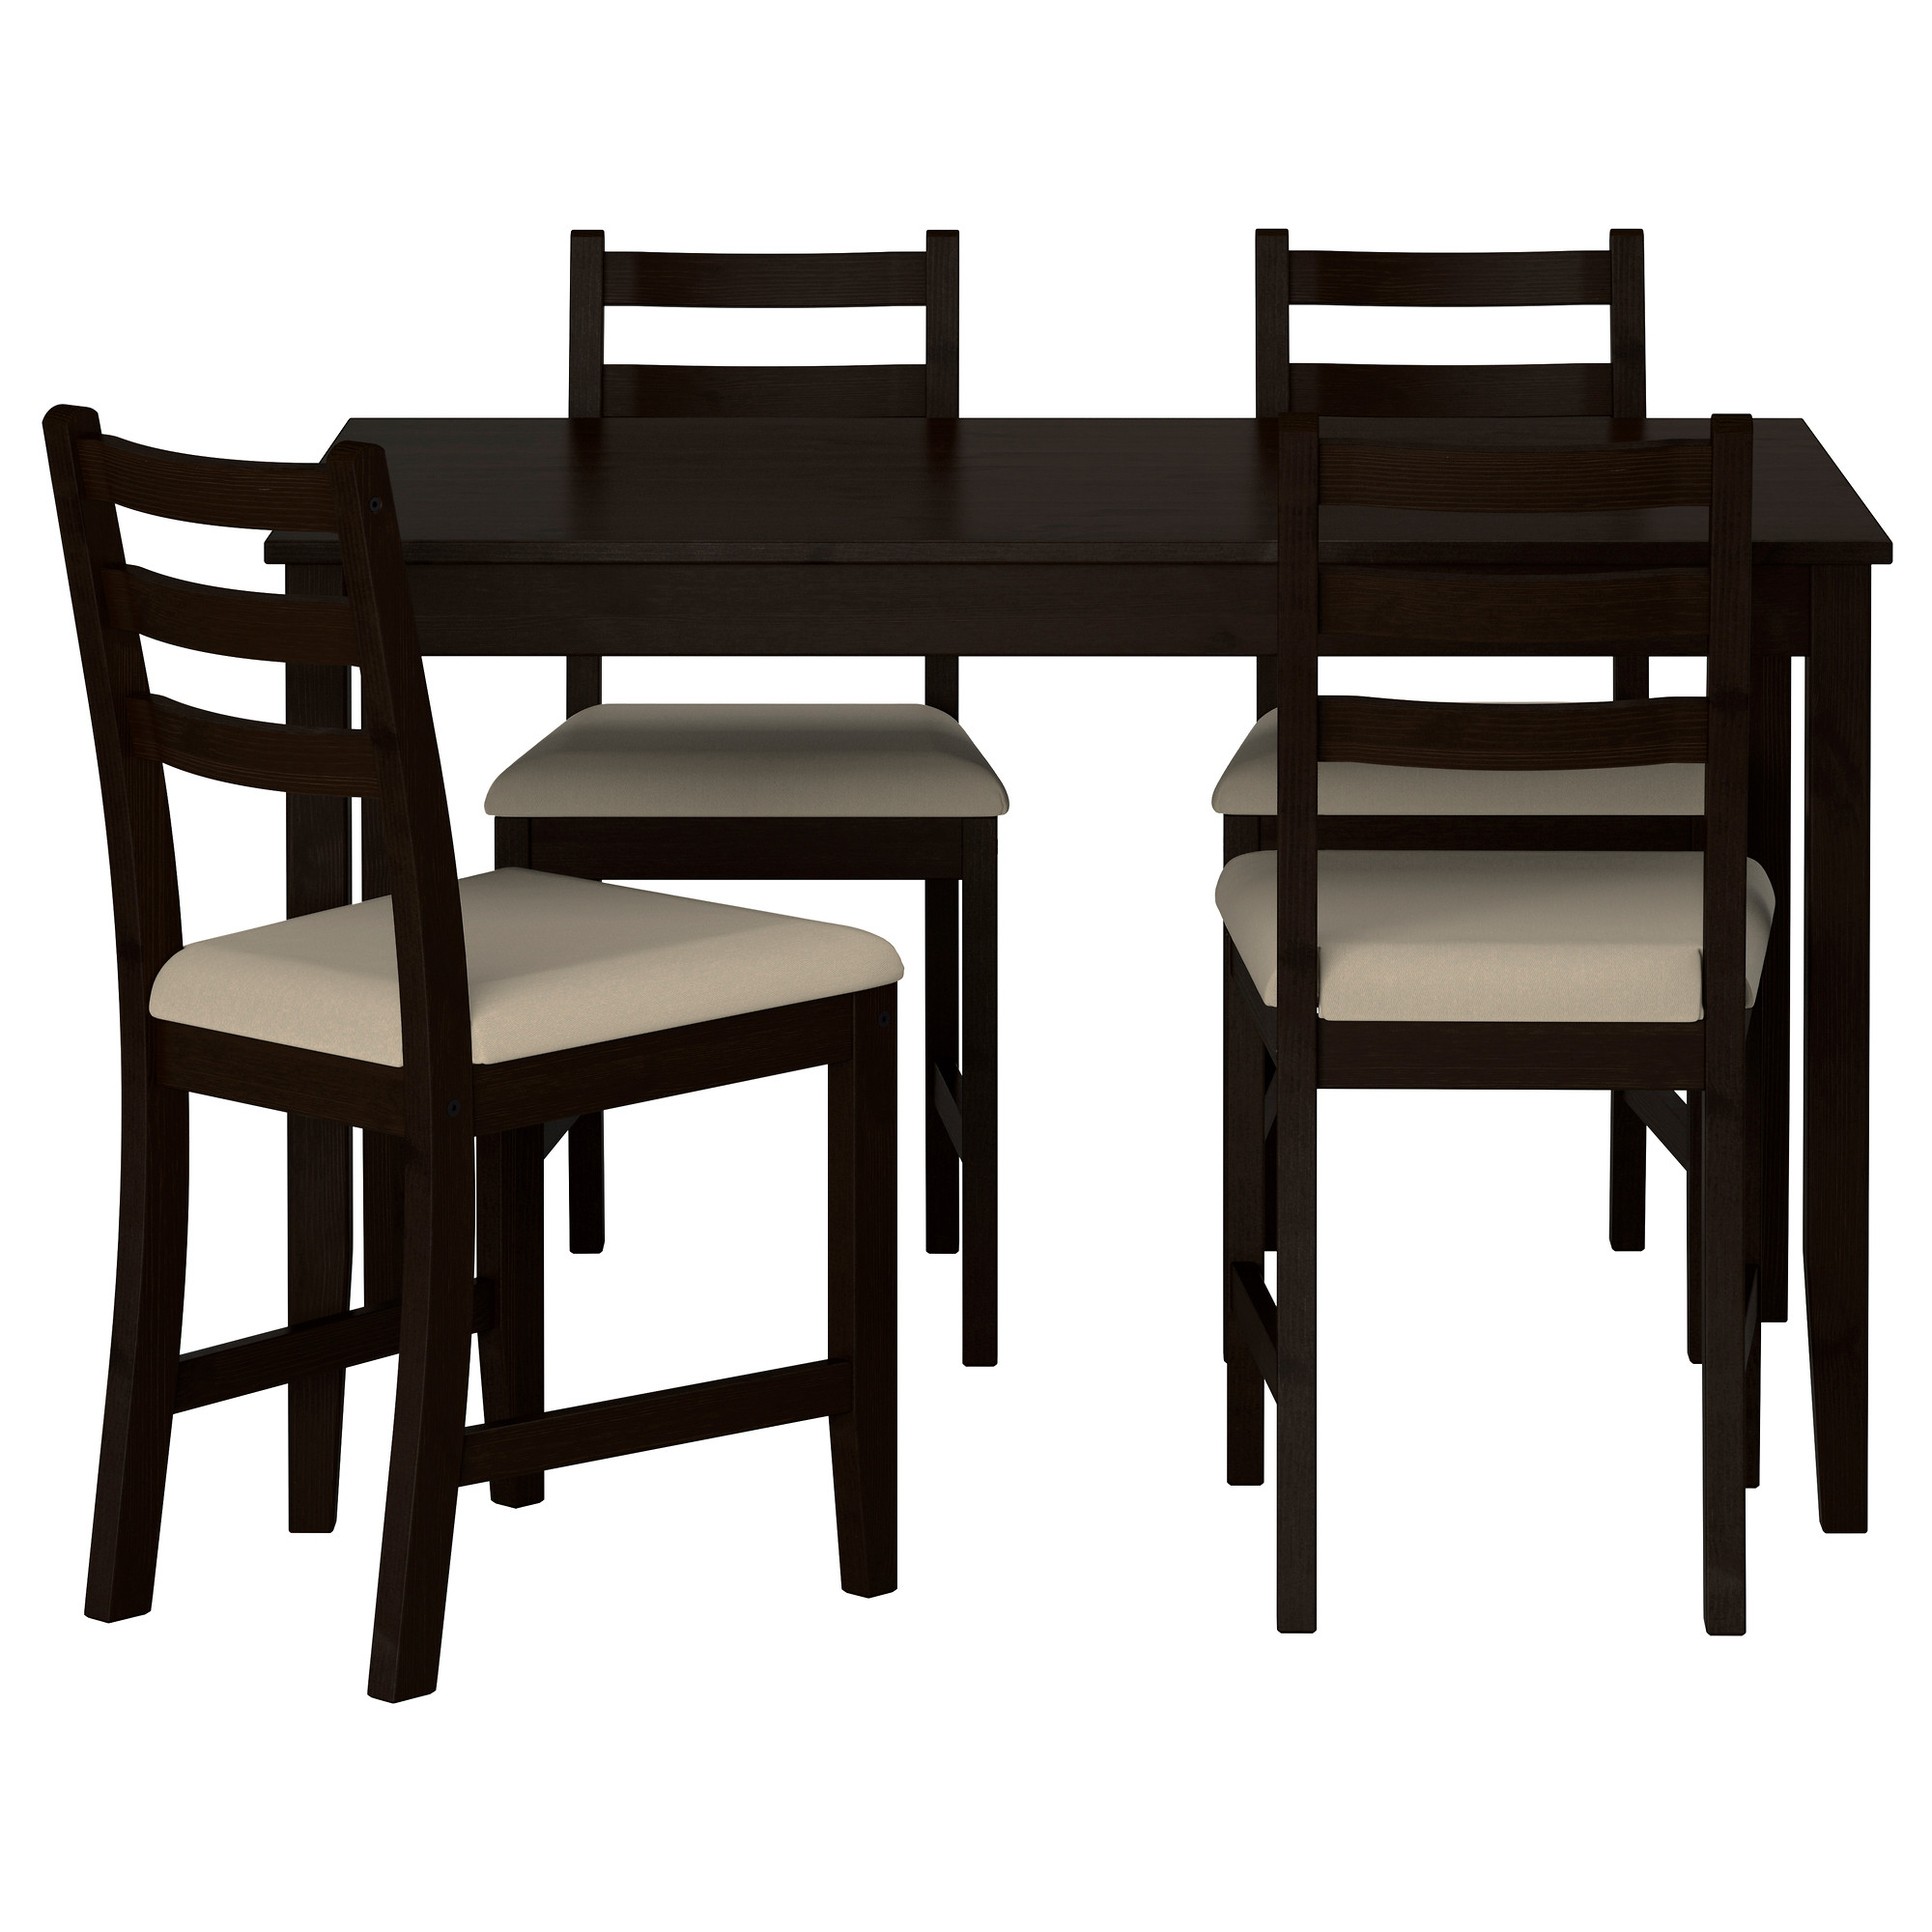 dining sets up to 4 seats - dining sets - ikea